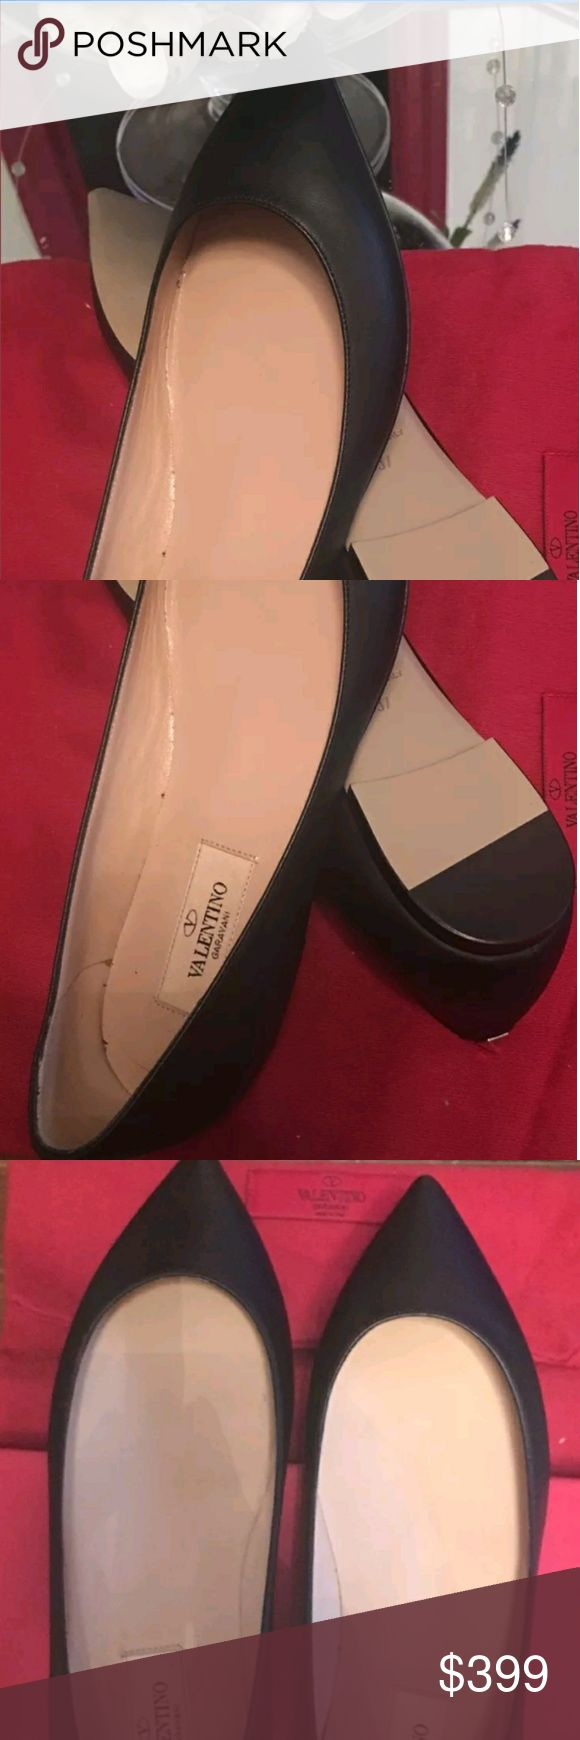 VALENTINO Ballerina Black Leather Shoes Size 7 Beautiful and super comfortable Pyramid studs dot pointy-toe flat.  Leather upper, lining and sole.  By Valentino; made in Italy.  Salon Shoes. Brand new boxed. Valentino Shoes Flats & Loafers